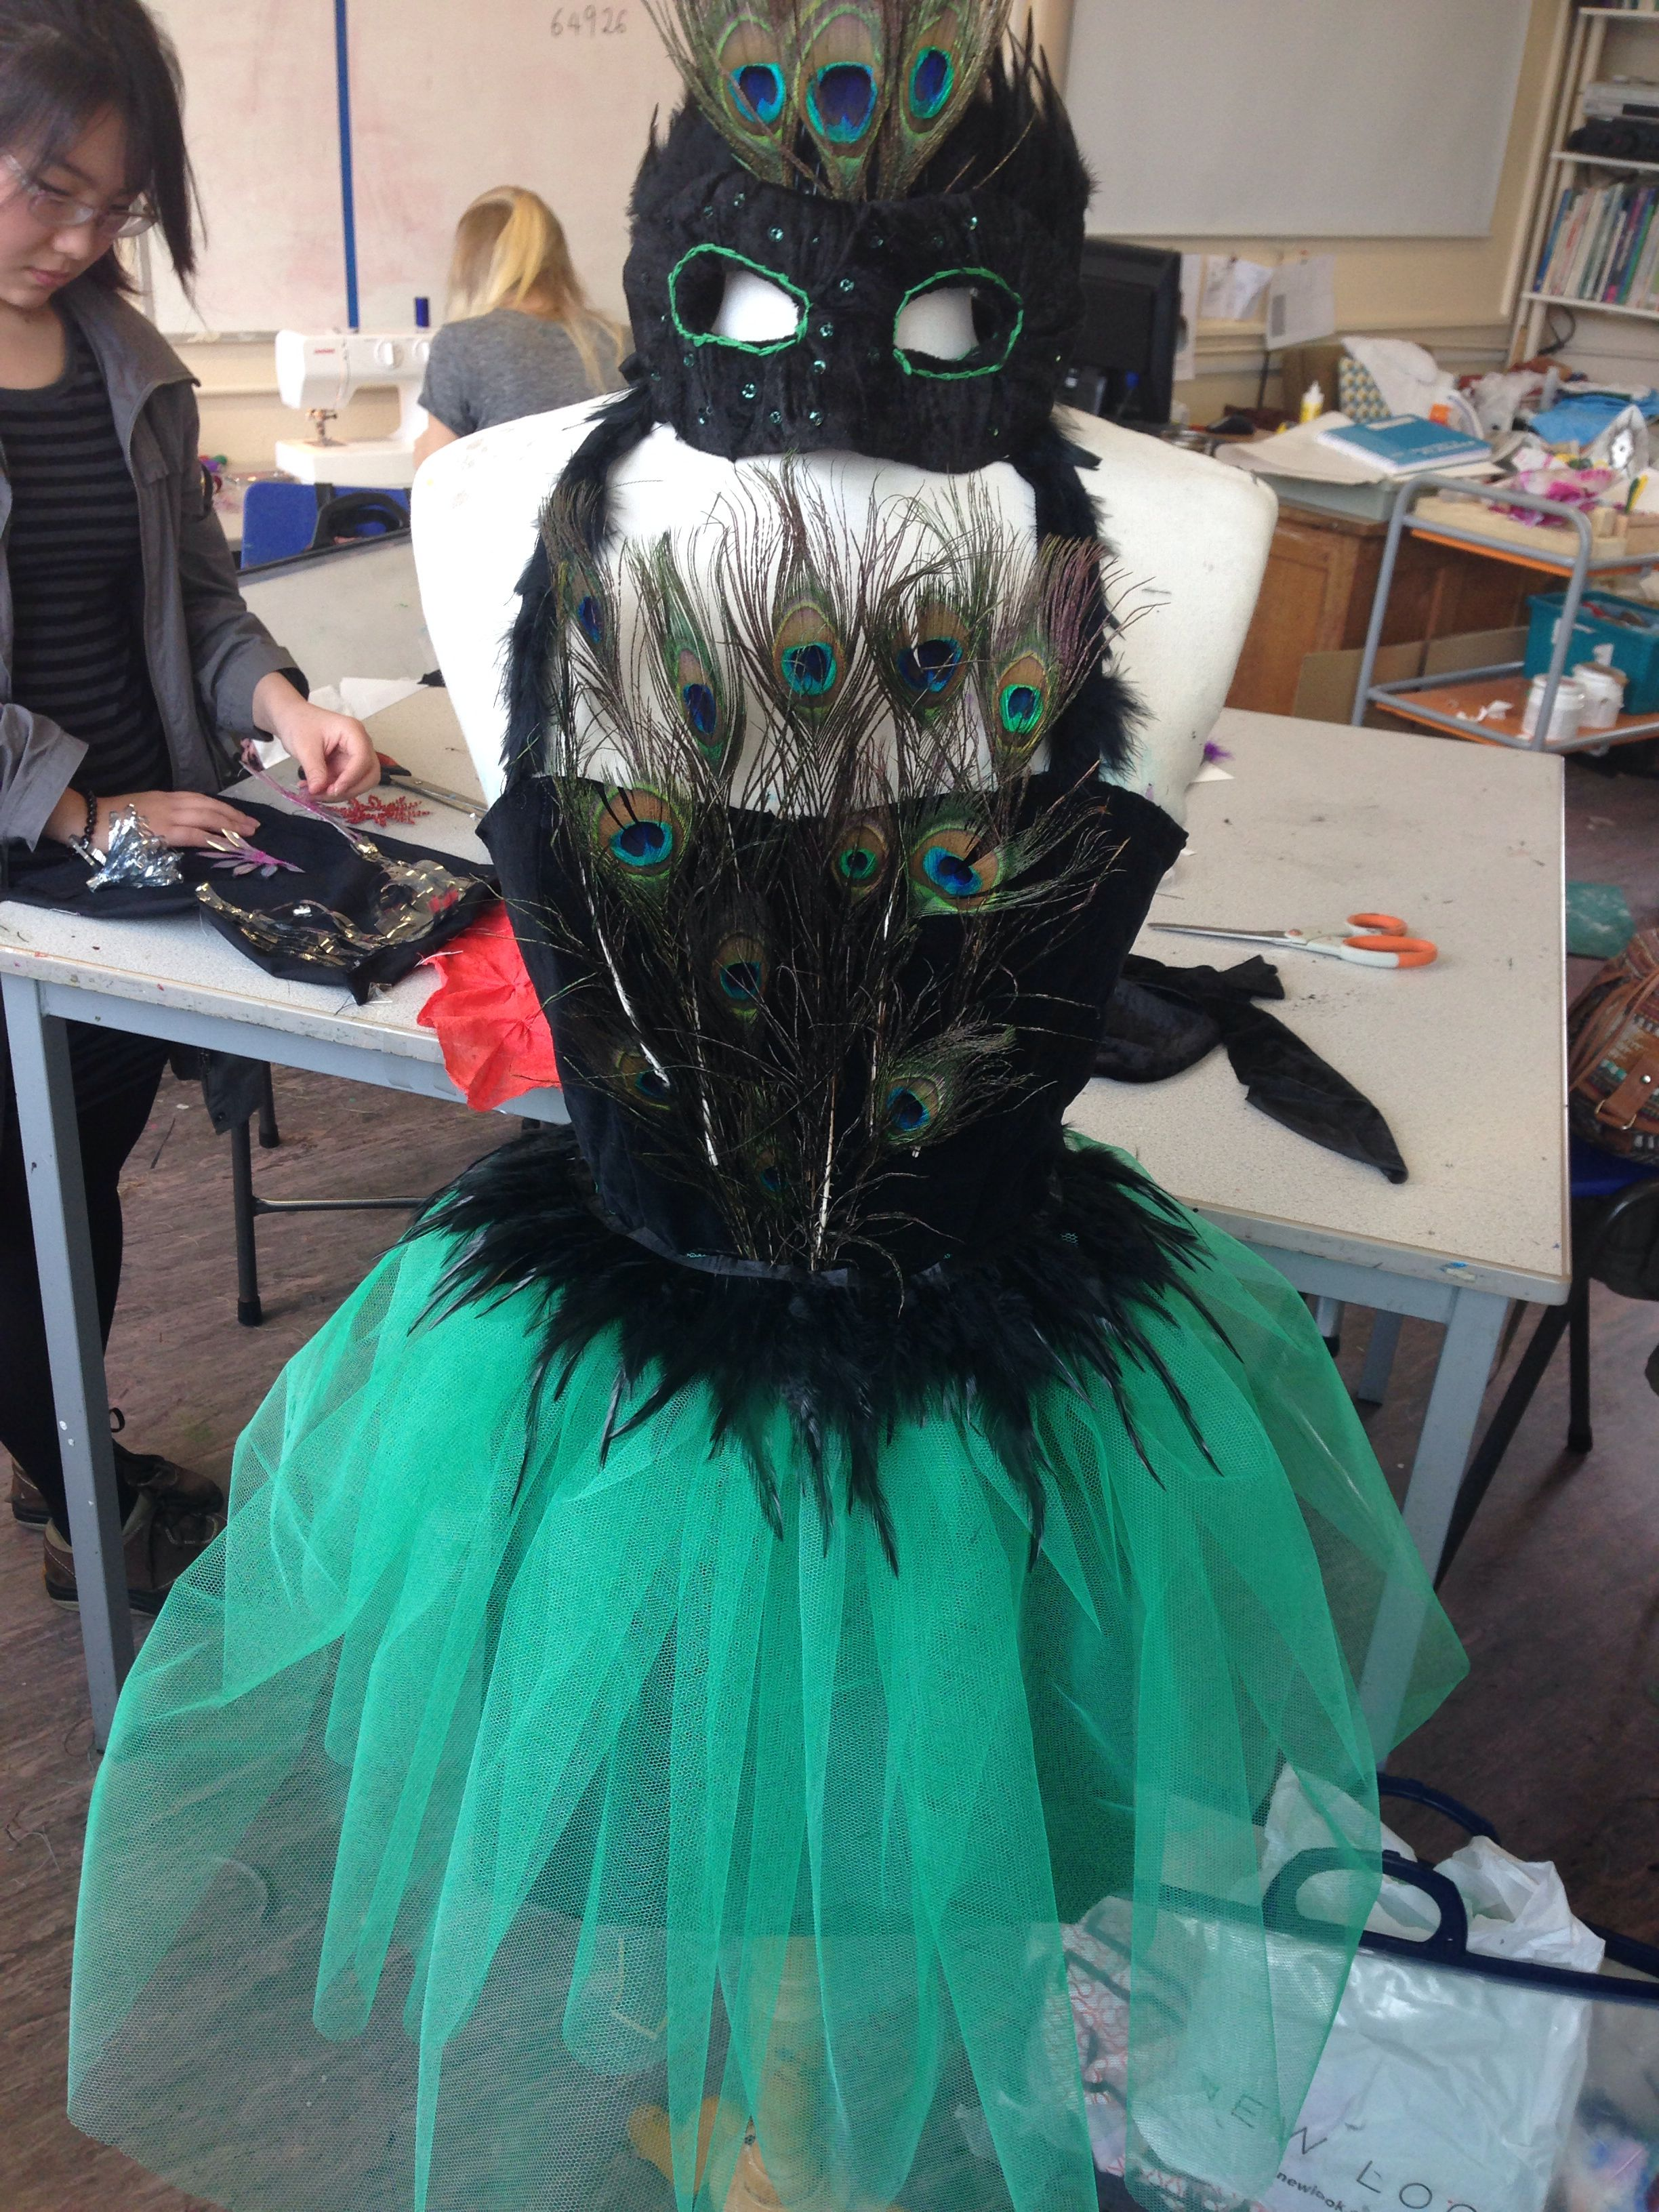 textiles gcse final piece exam level inspiration textile pieces abbott students natural projects student gemma costume sketchbook user exams drawings